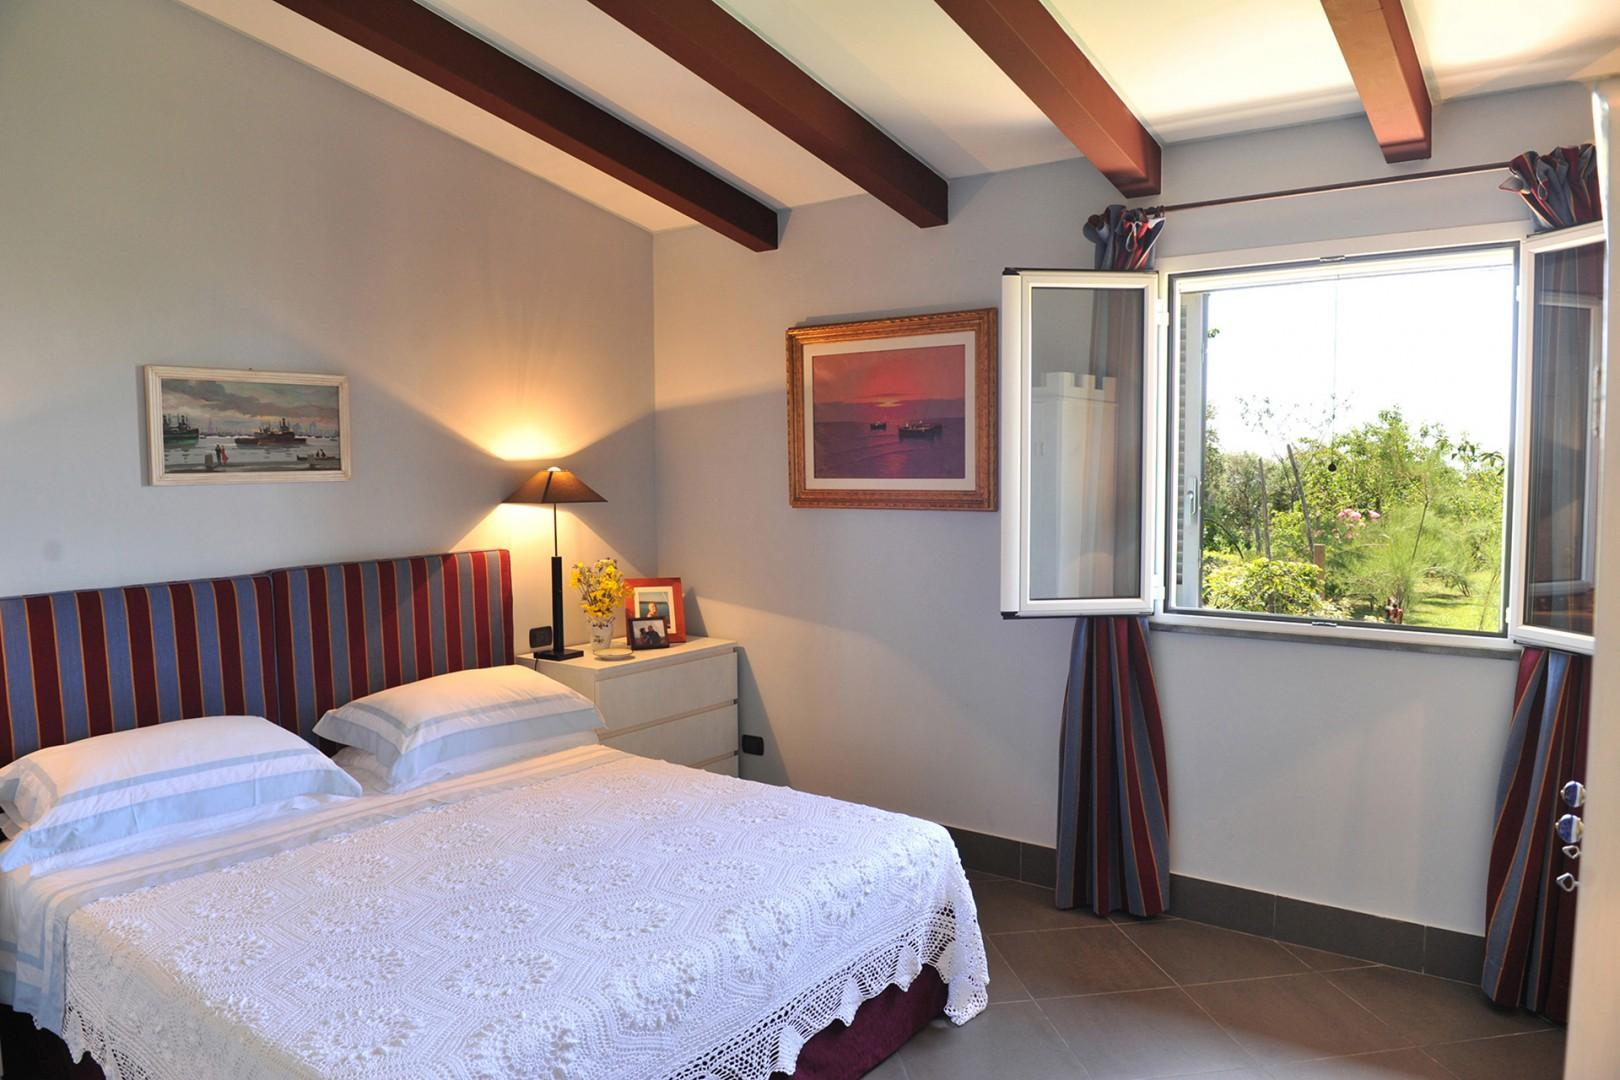 Beamed ceilings in bedroom 1. All 3 bedrooms have beds that can be prepared together or apart.